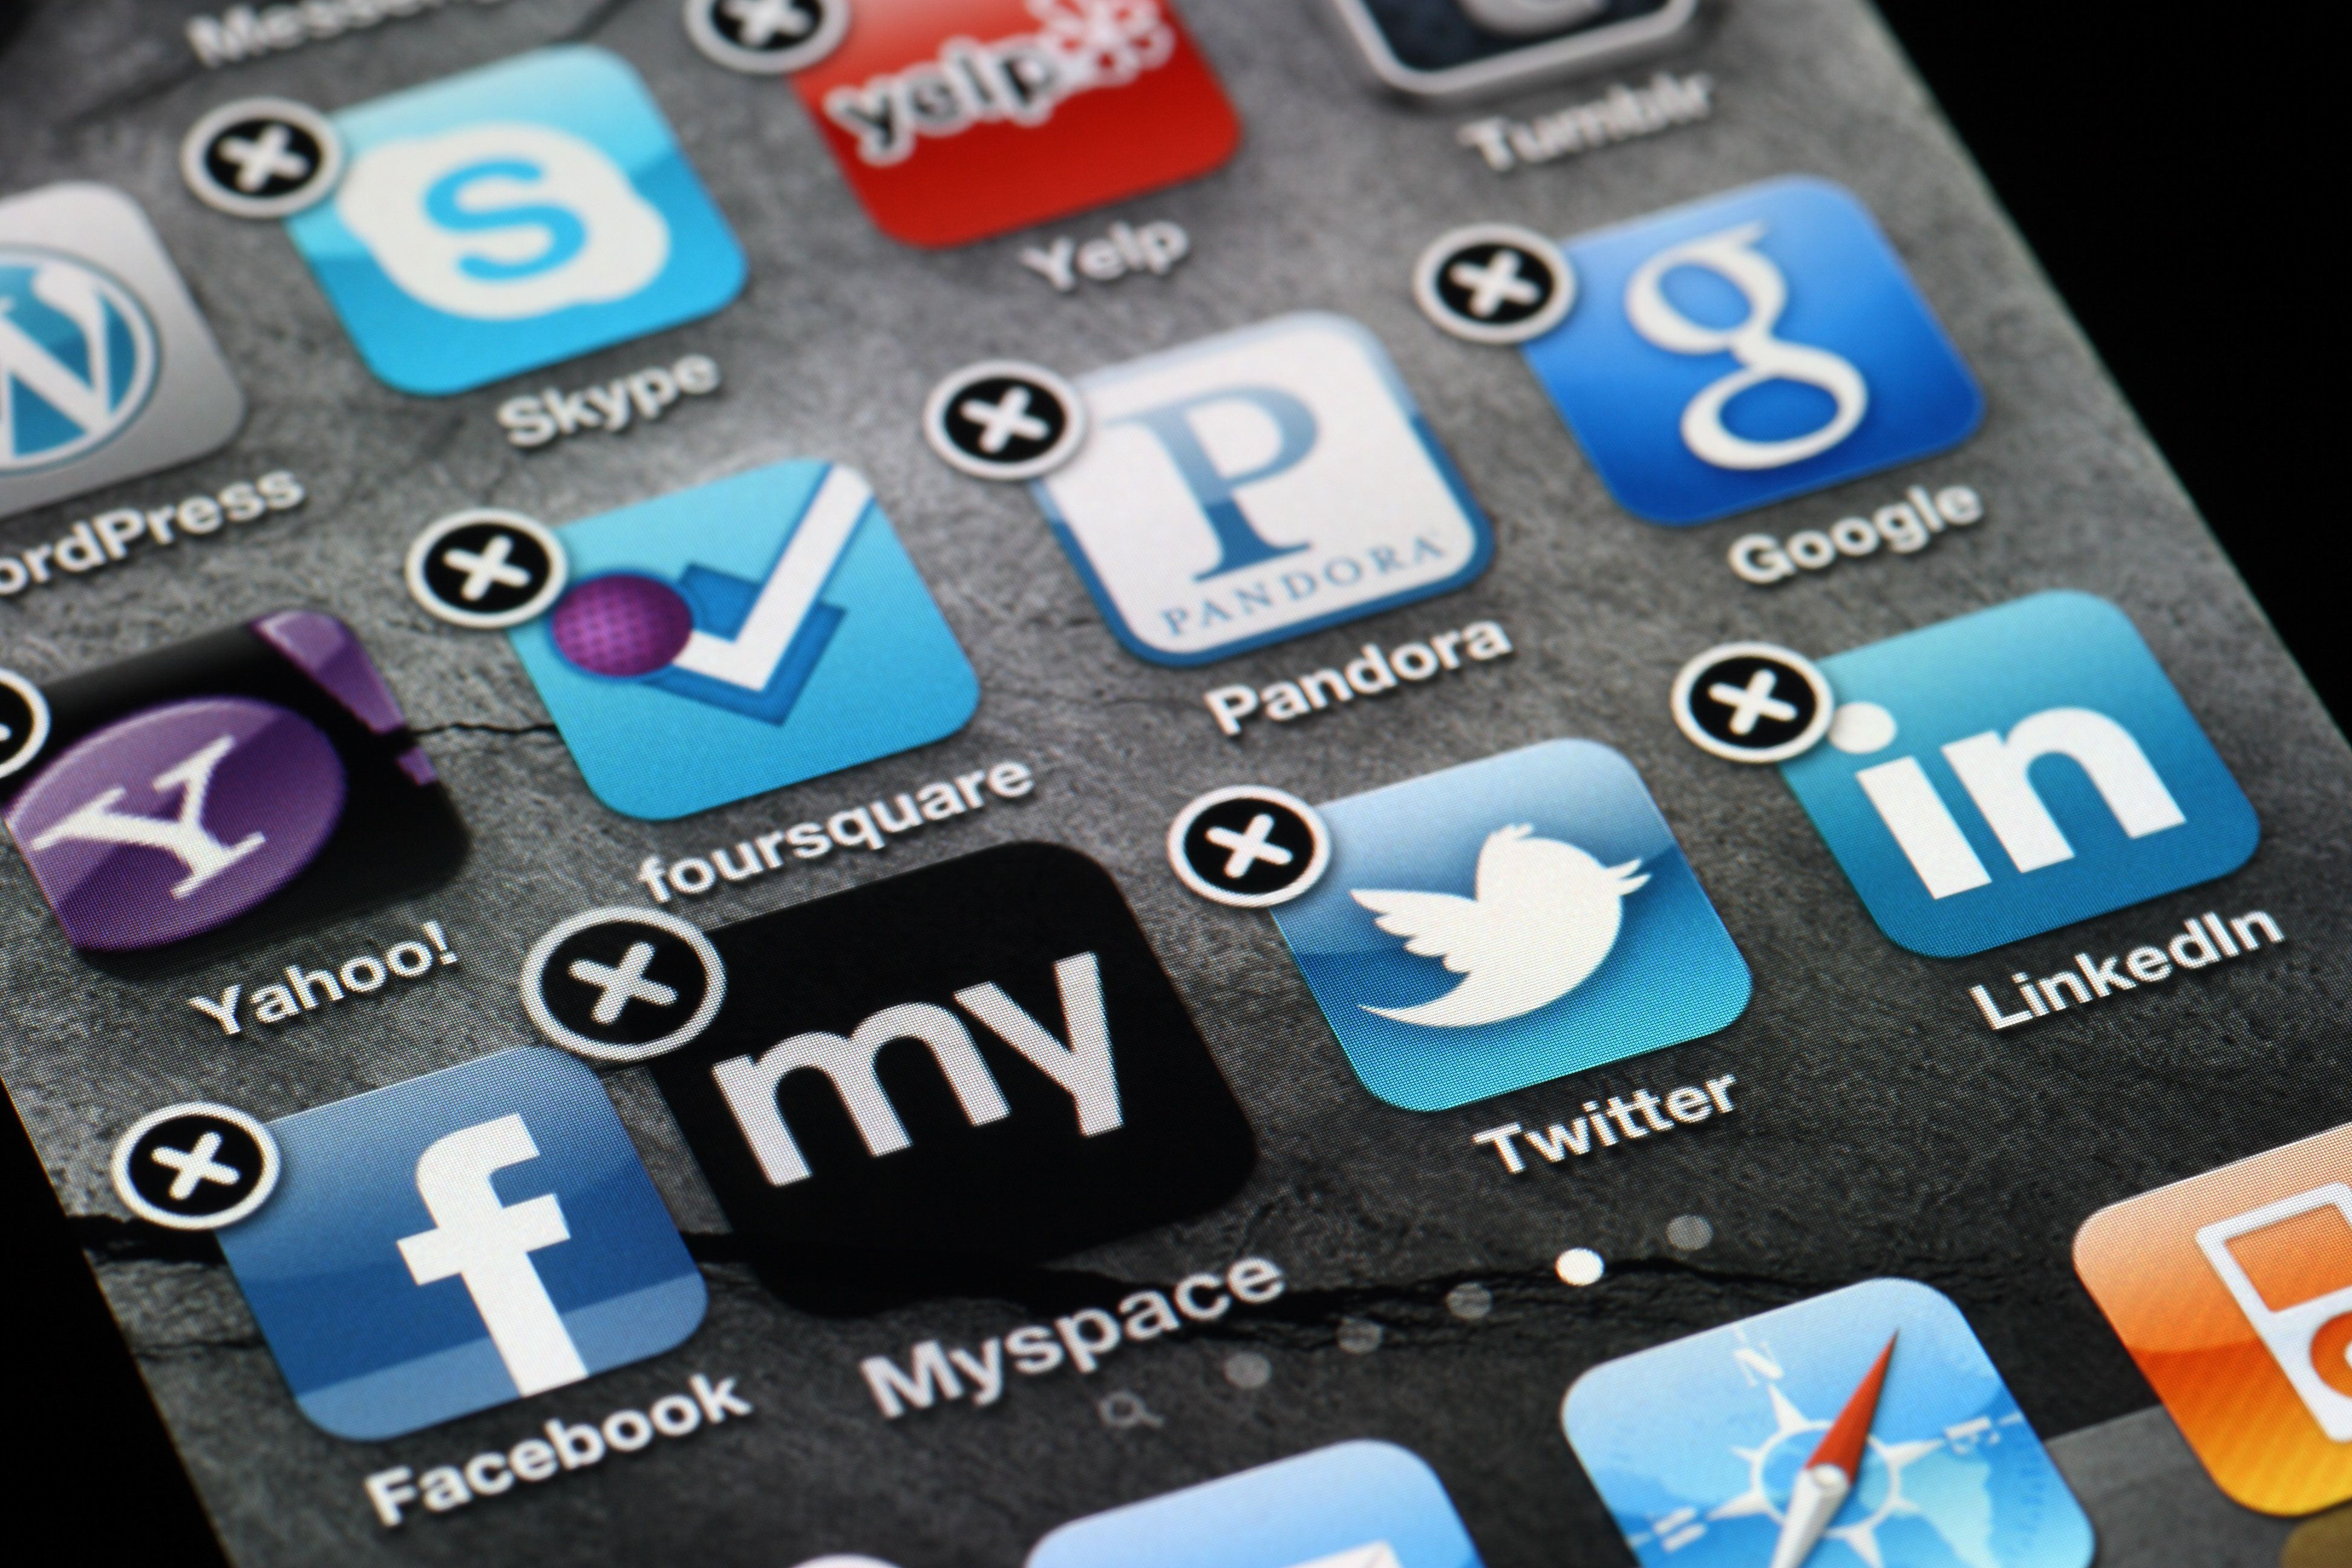 'San Francisco, California, USA - April 9, 2012:  The Myspace app being deleted from an Apple iPhone 4, showing various other social media apps, including Facebook, Twitter, LinkedIn, Foursquare, and Pandora.'